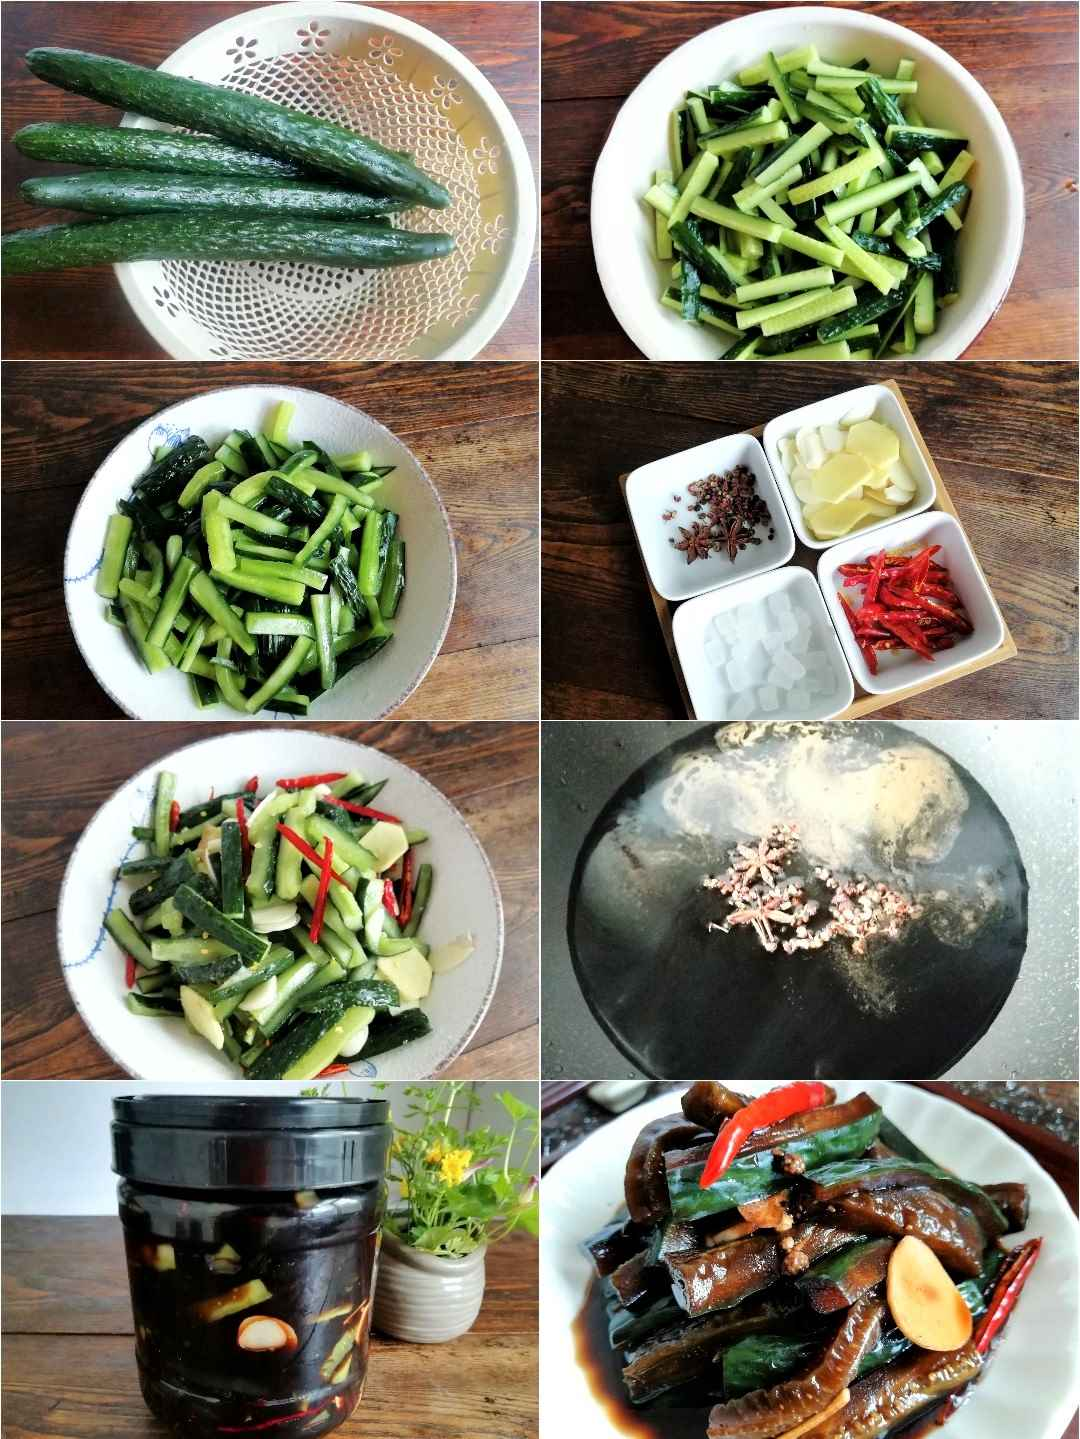 Chinese pickled cucumbers recipe steps